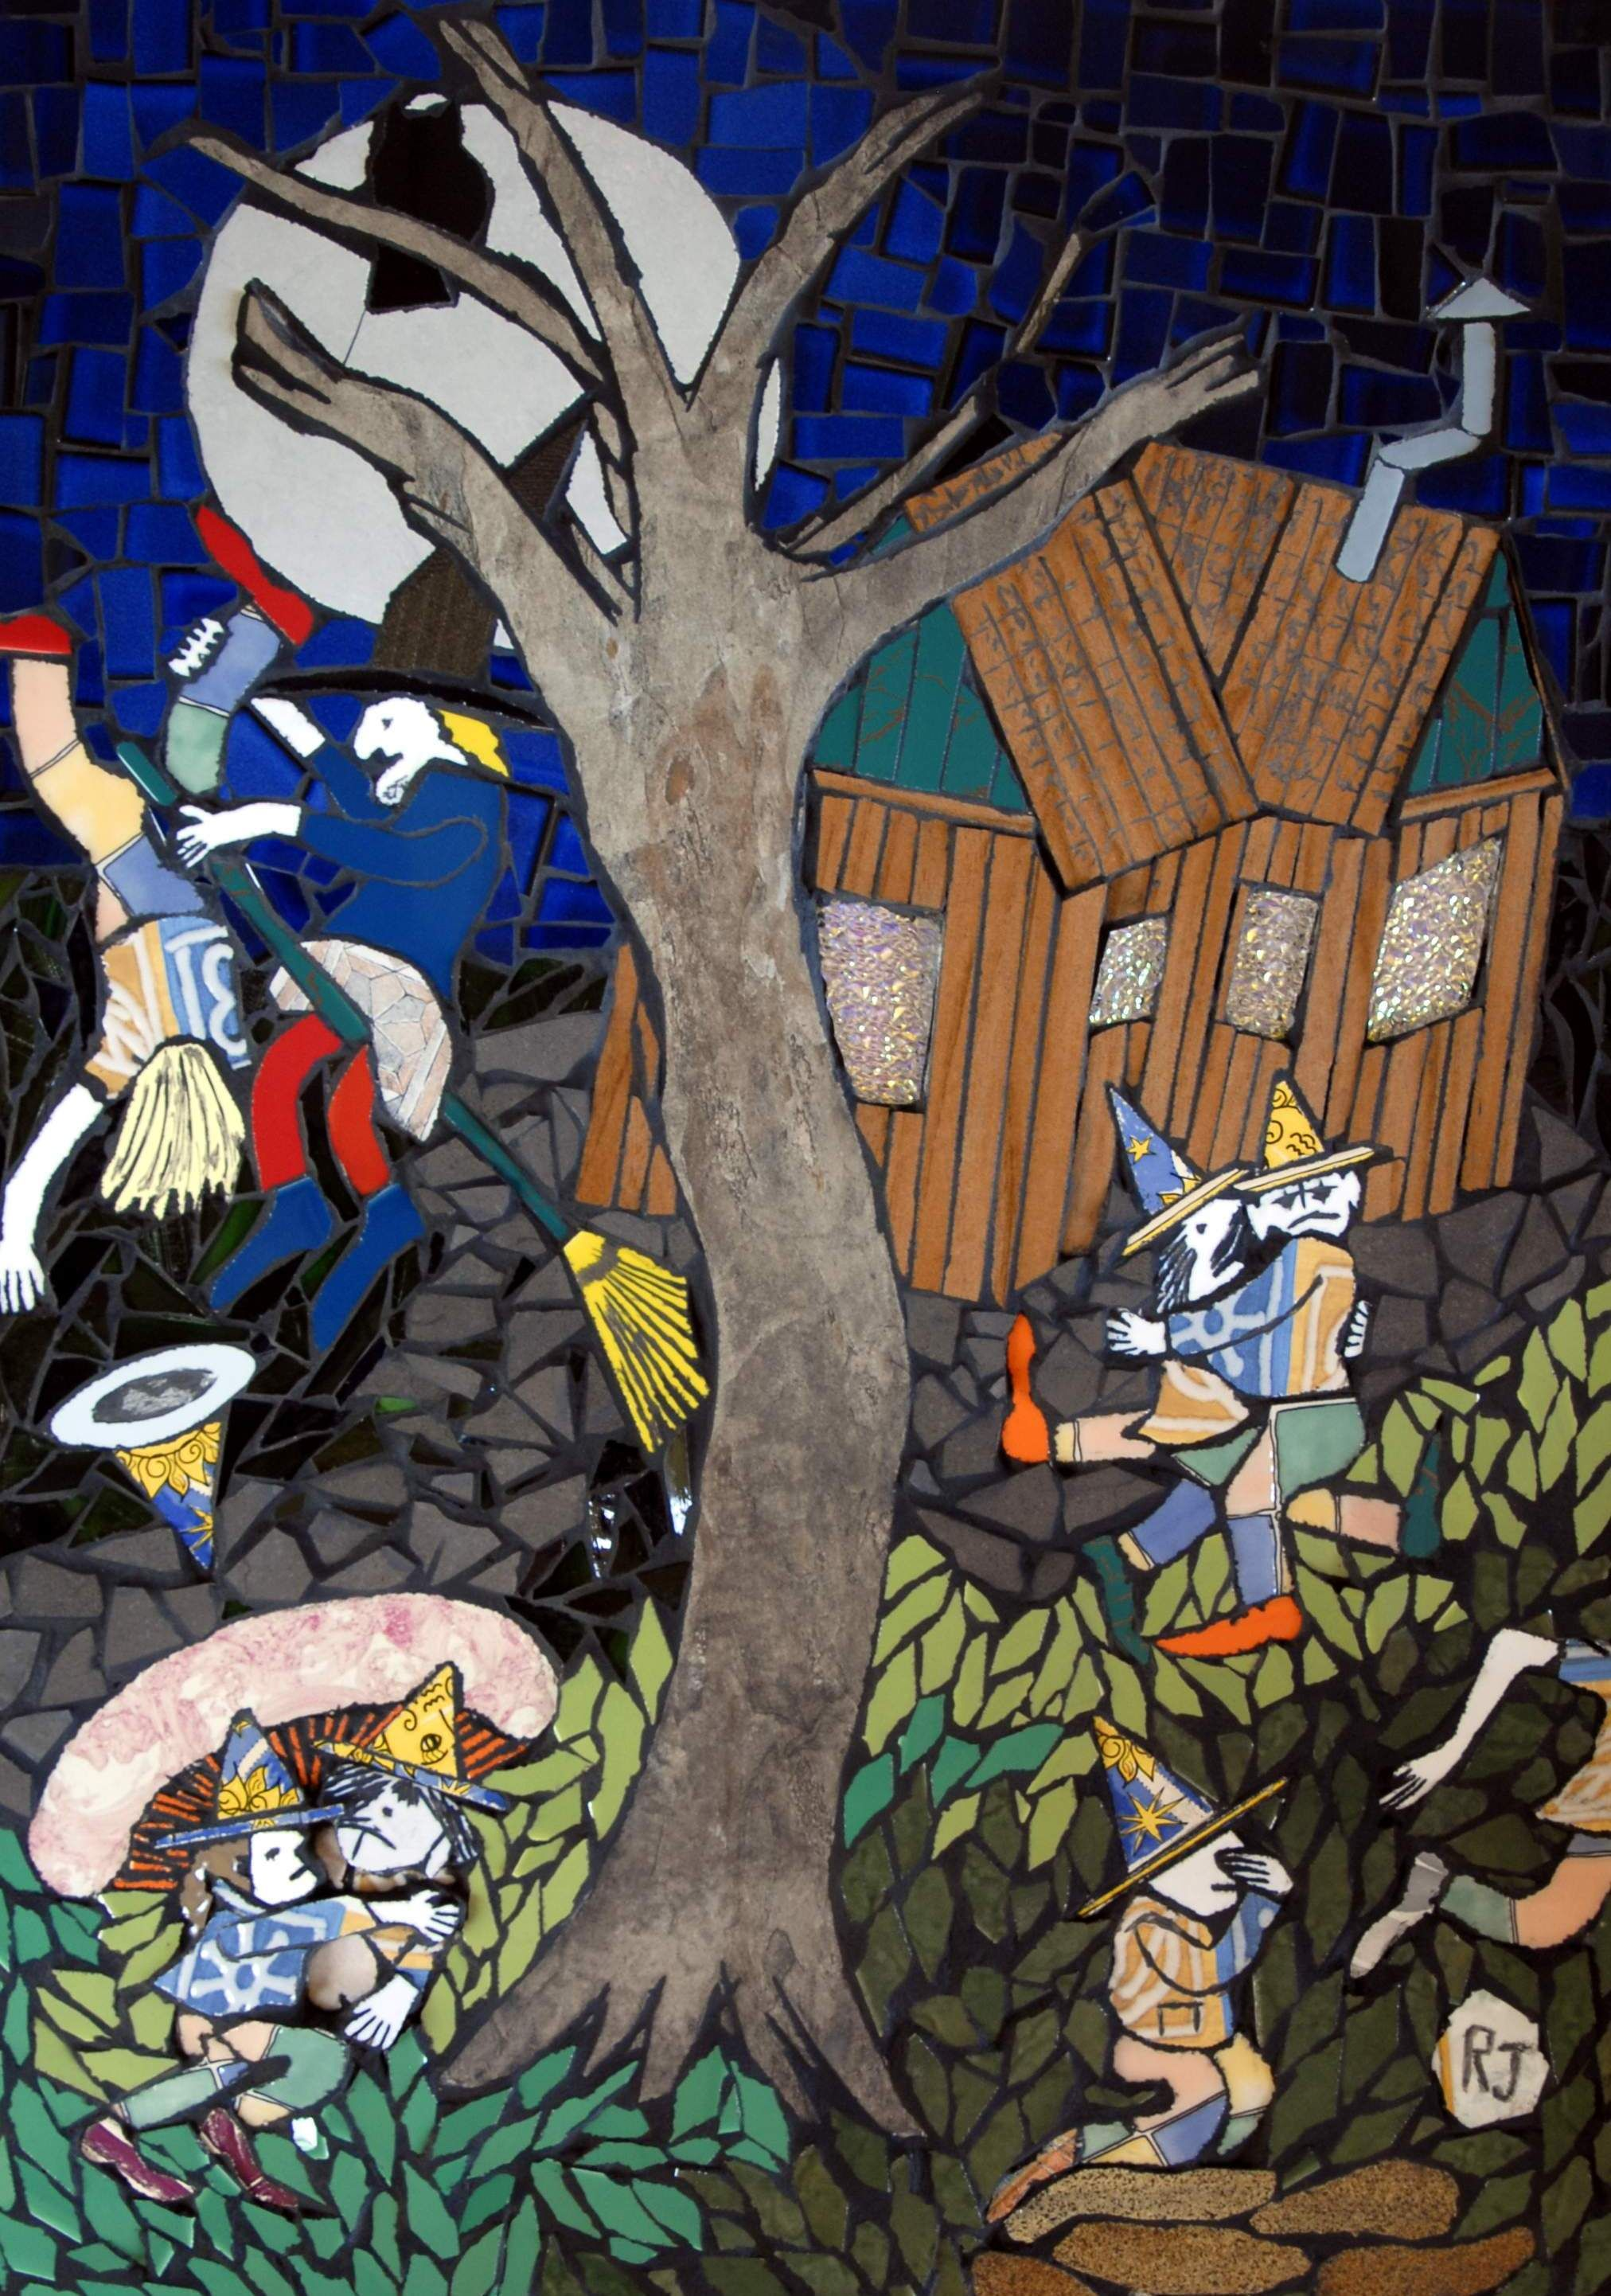 The goblins nightmare 75 cm x 50 cm mosaic art wall hanging 75 cm x 50 cm mosaic art wall hanging ceramic tile and glass dailygadgetfo Gallery